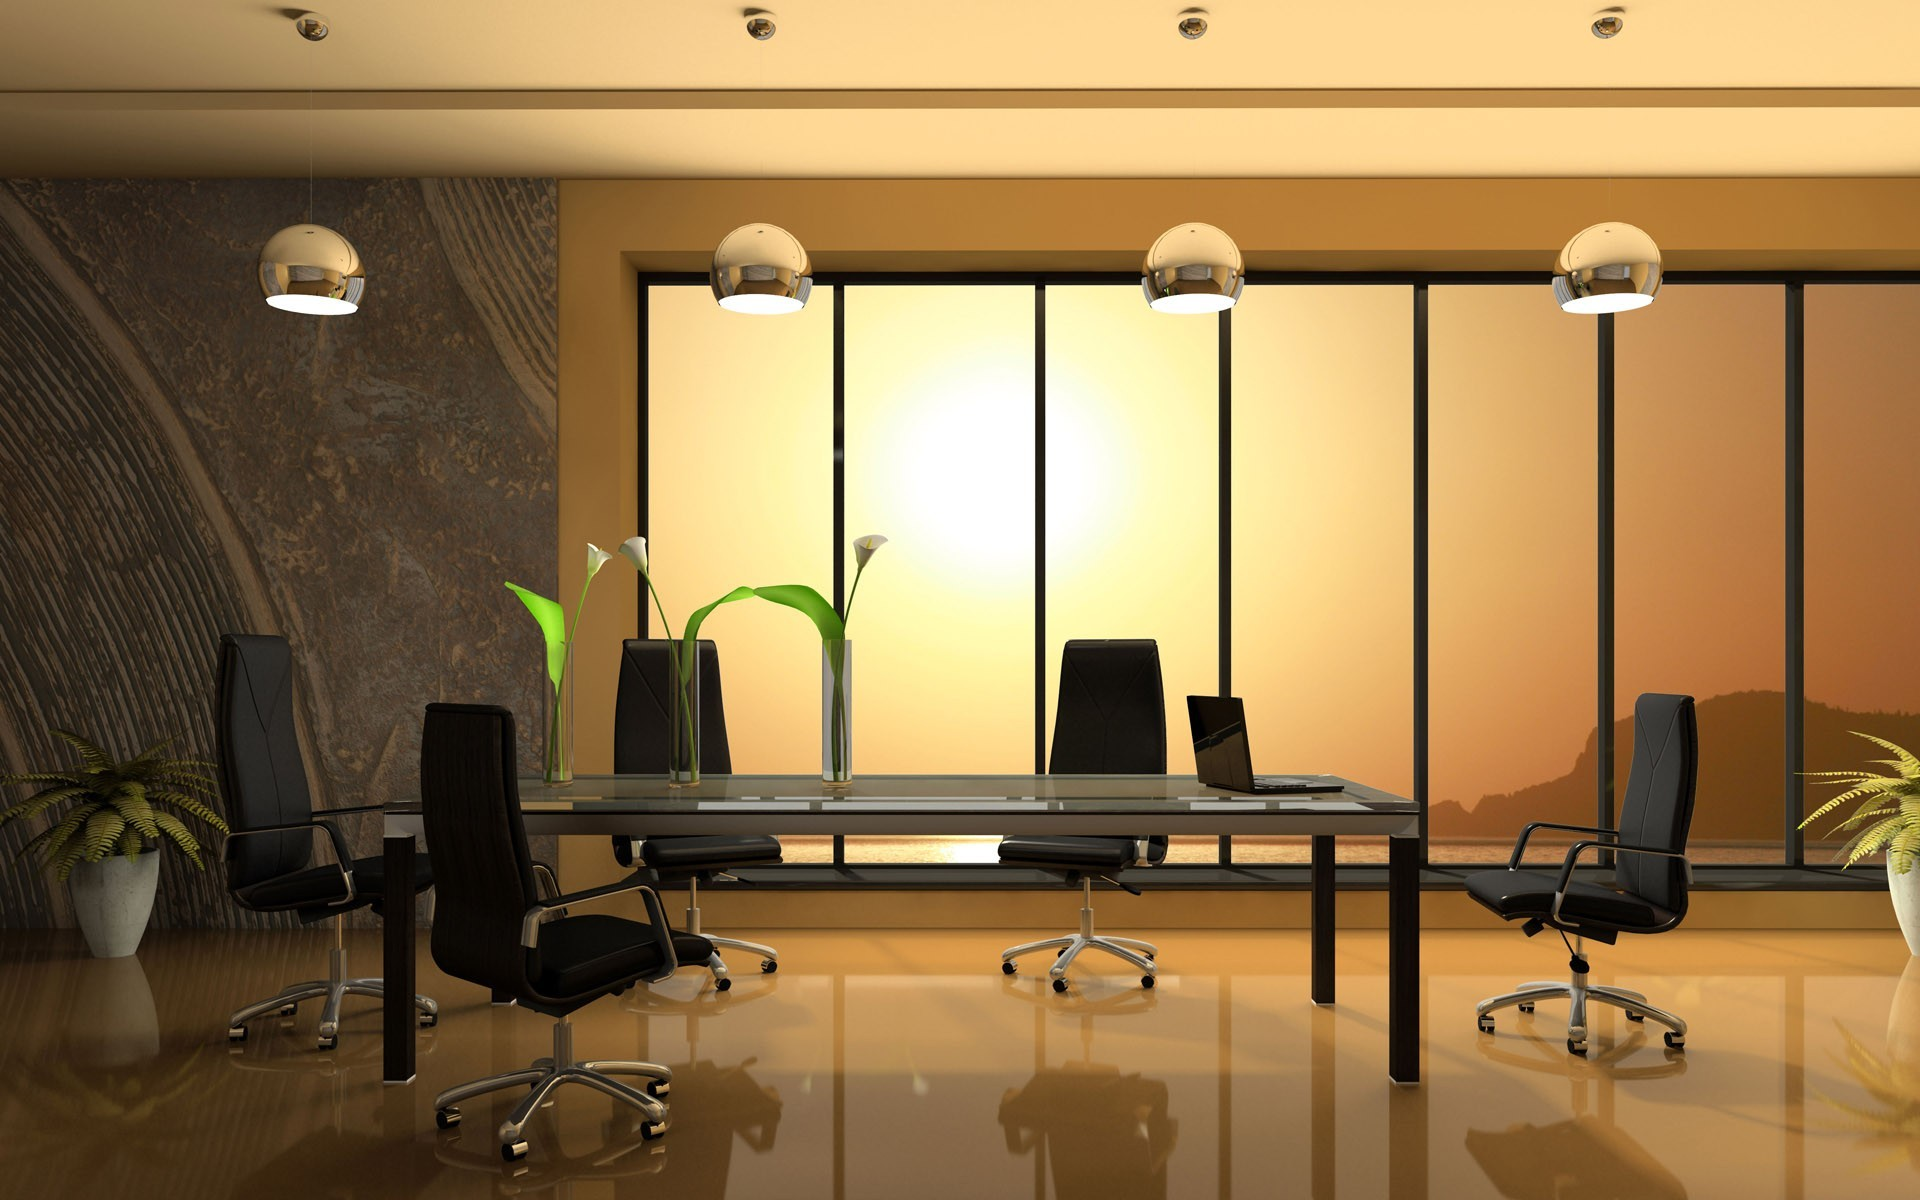 Office interior design wallpaper 138 for Interior decoration wallpaper design